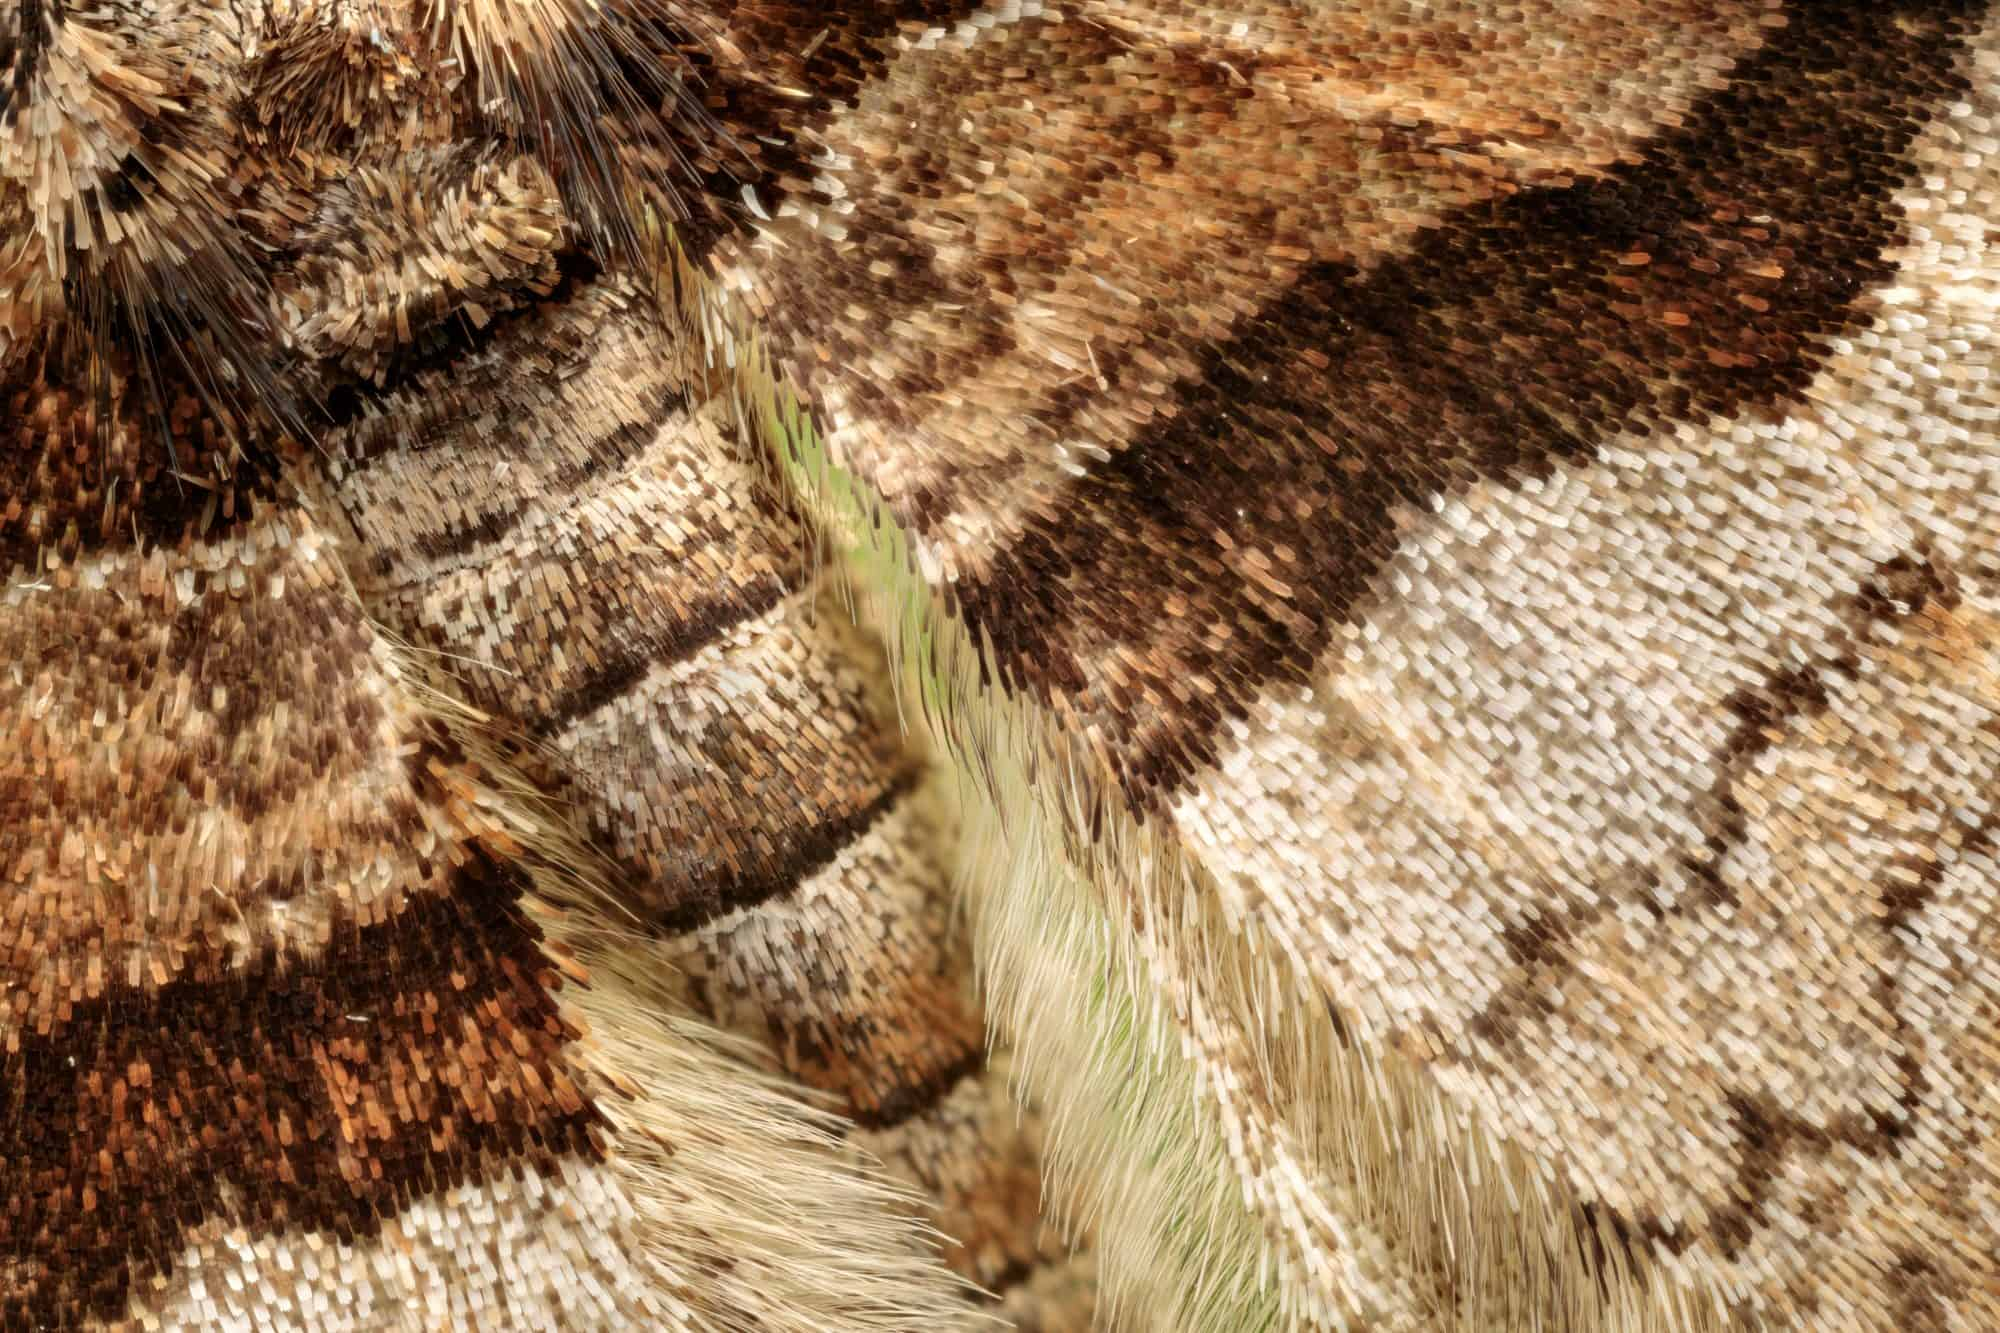 Close up scale detail of Barberry Carpet Moth (Pareulype berberata)